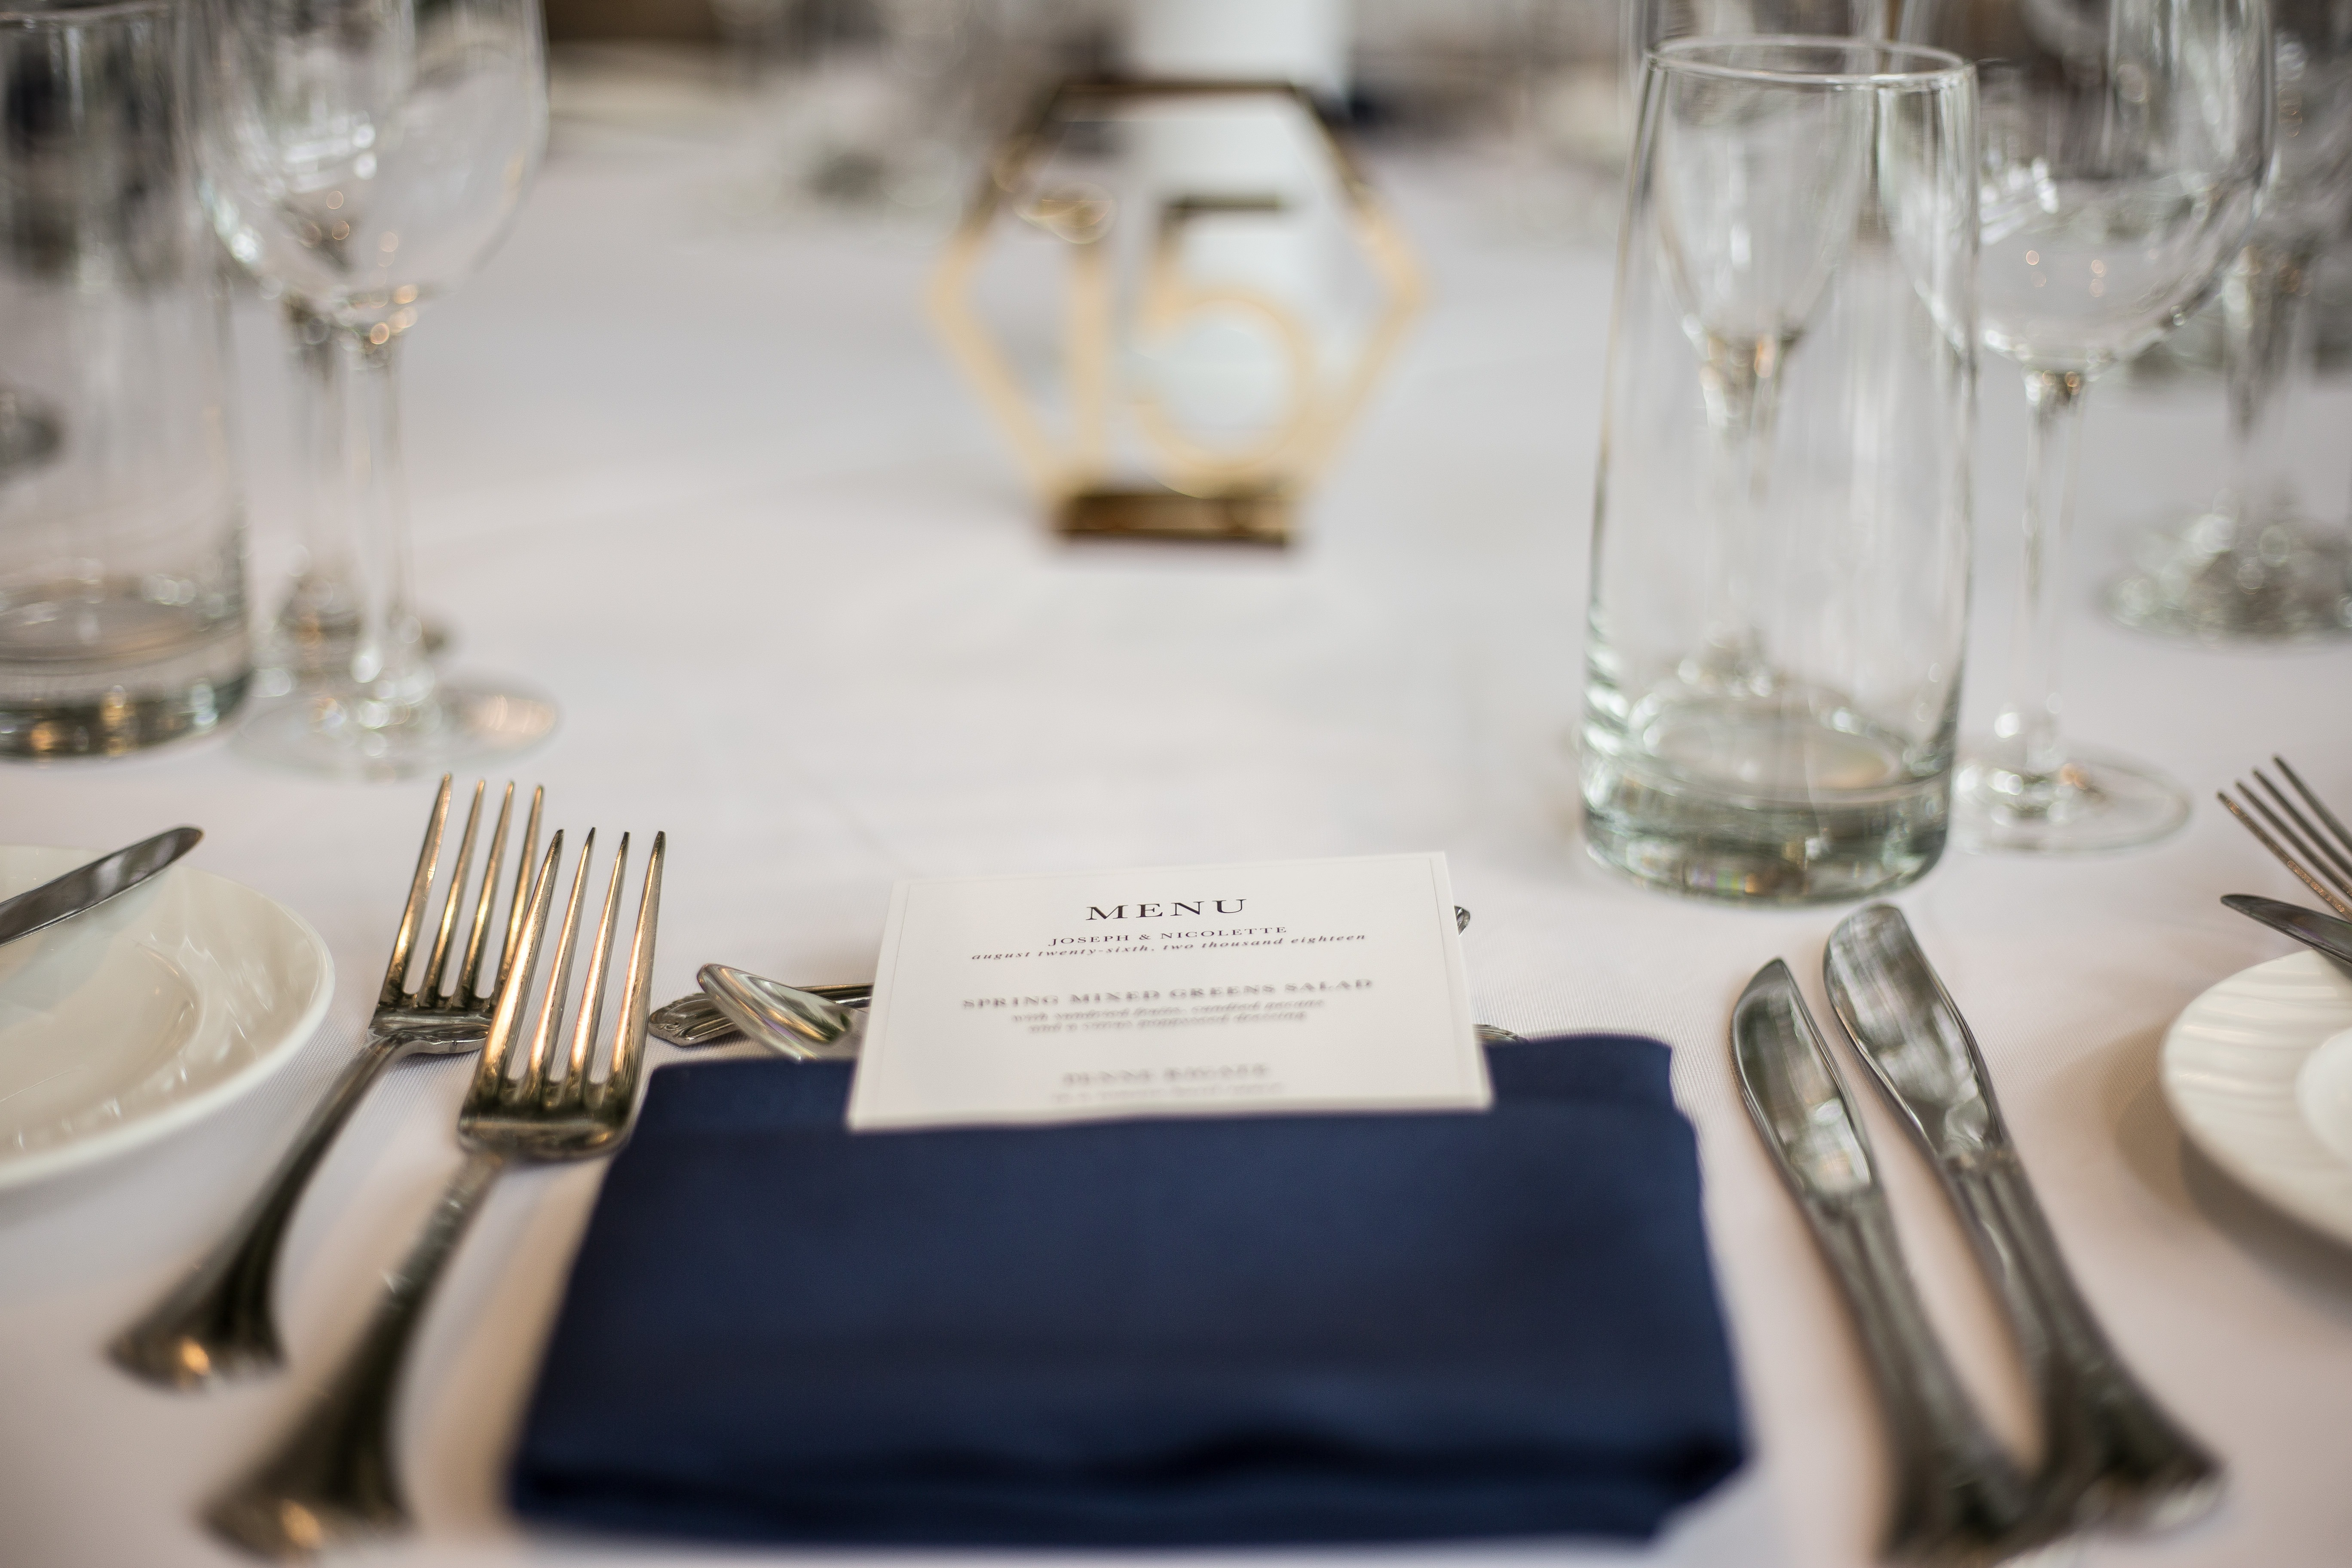 formal table setting with menu